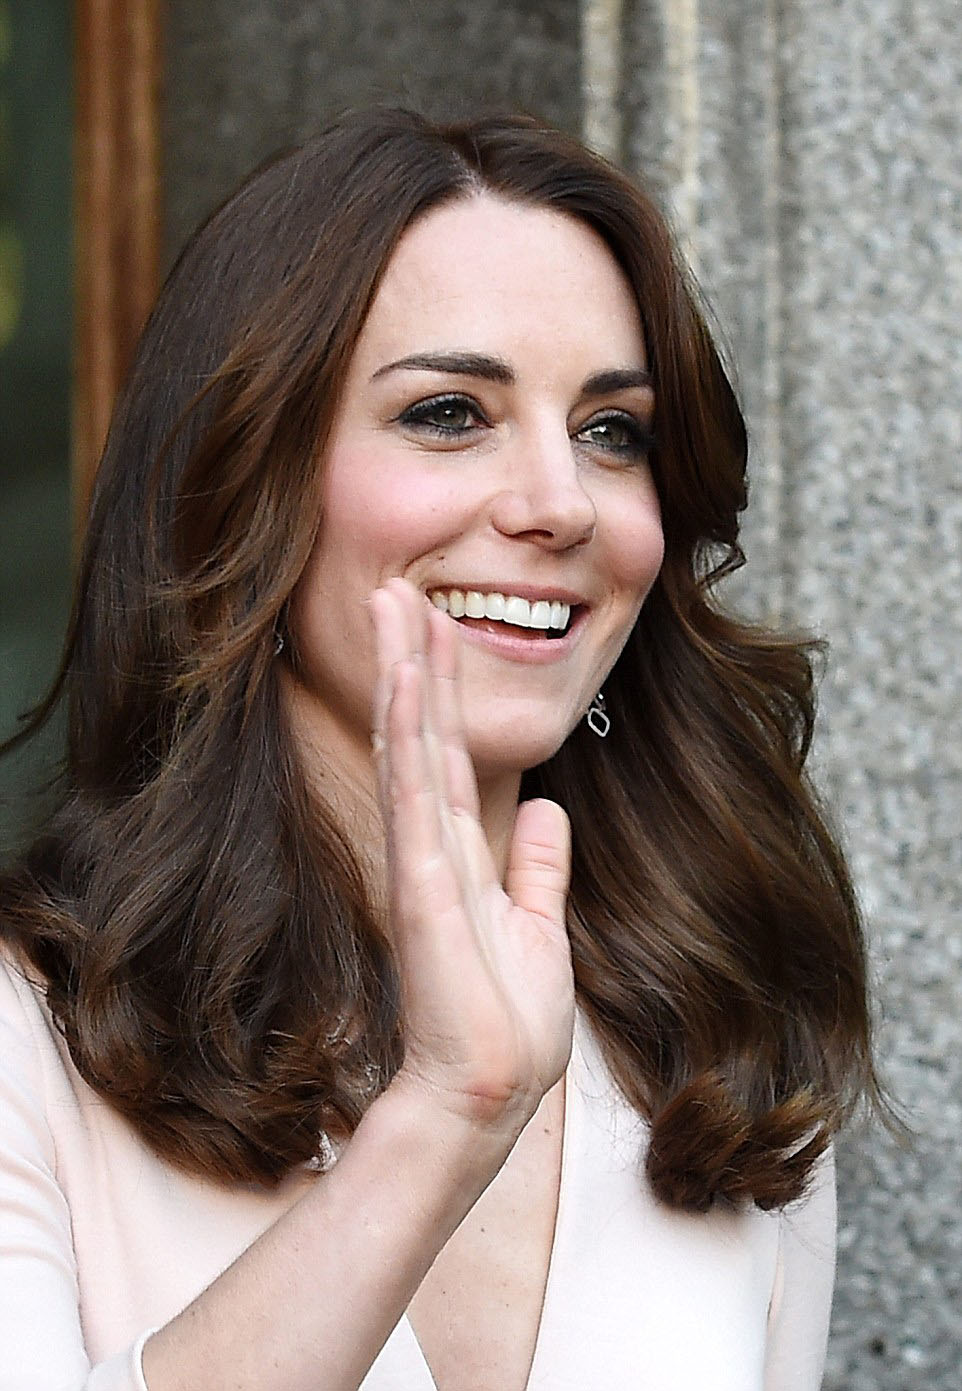 royal family around the world  catherine  duchess of cambridge visits the  u0026 39 vogue 100  a century